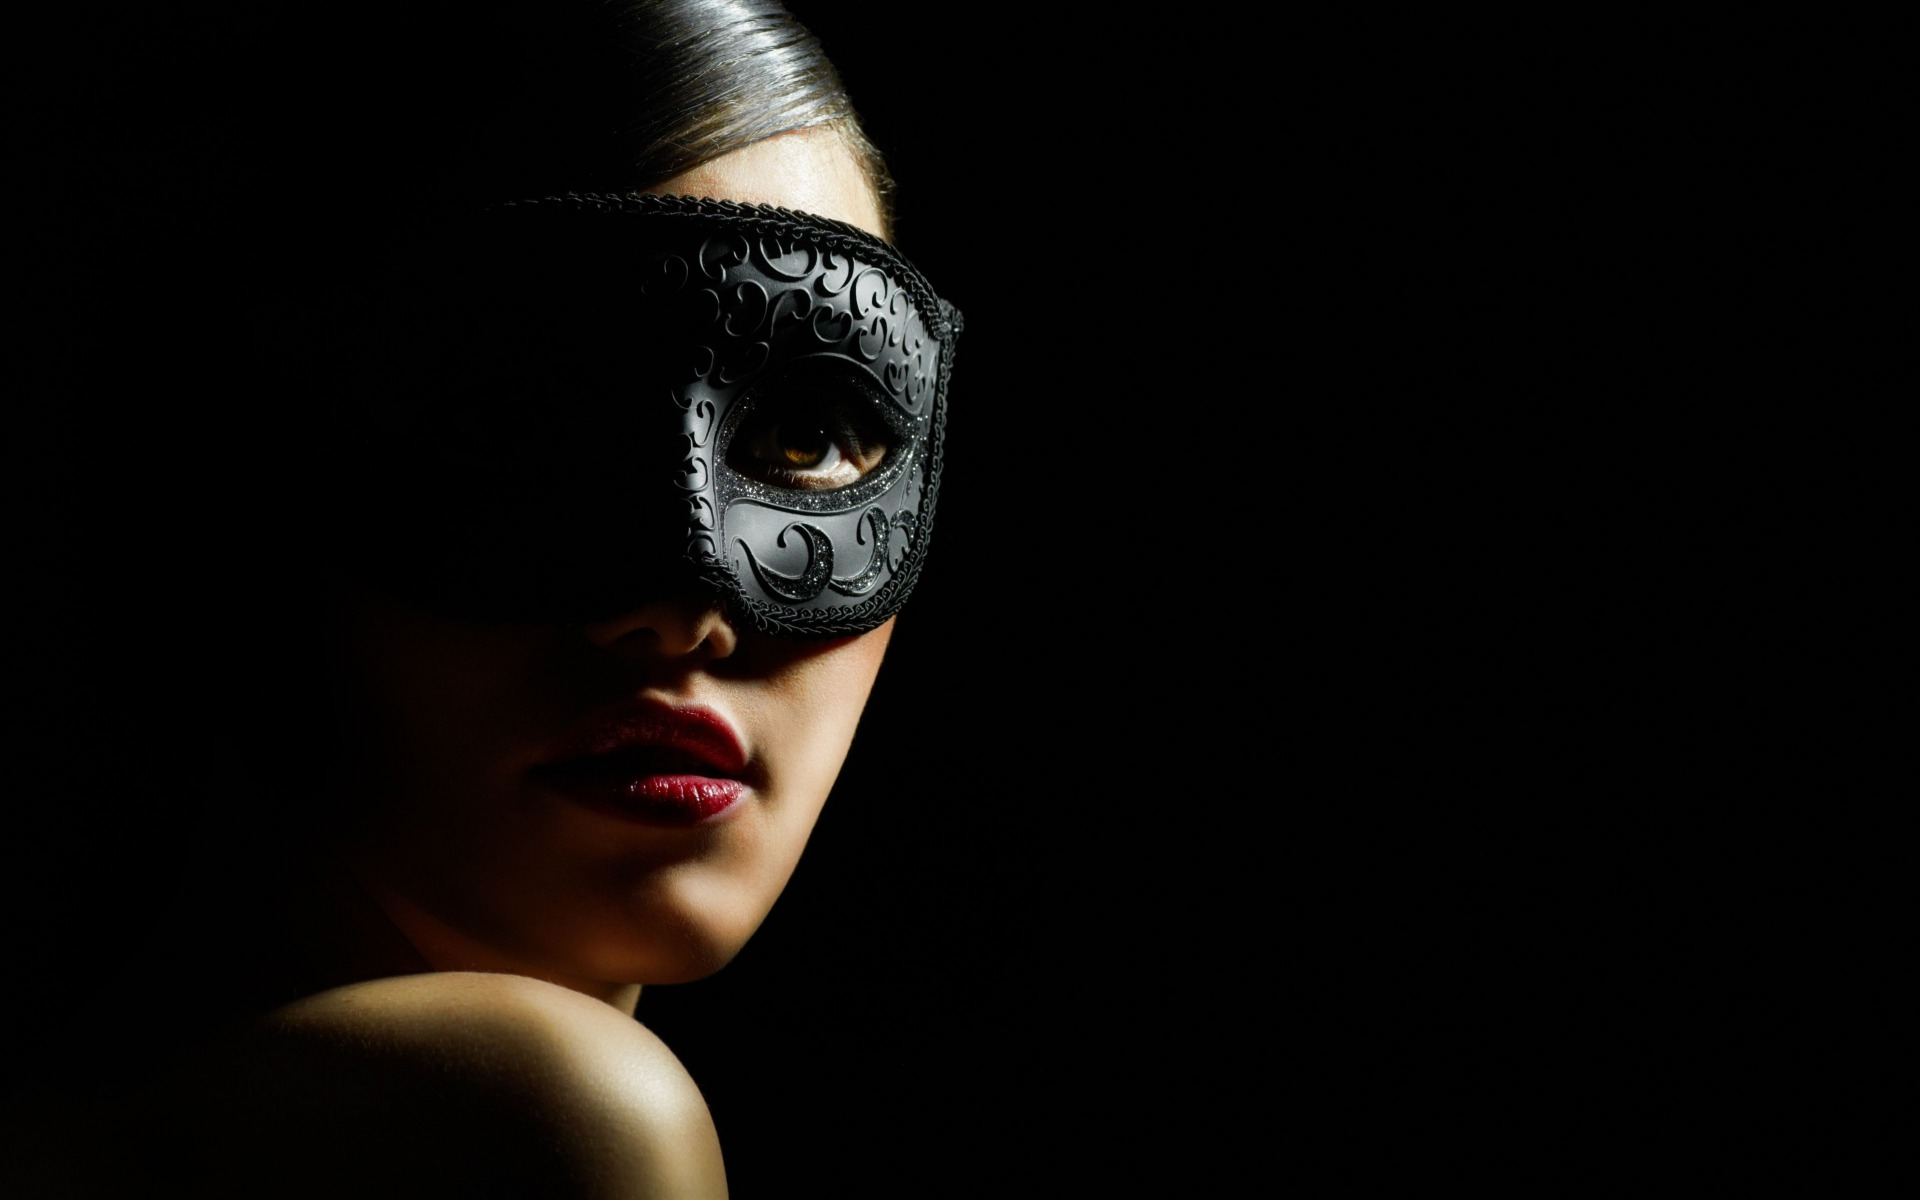 mask_awesome-mask-wallpaper_072542608_206.jpg